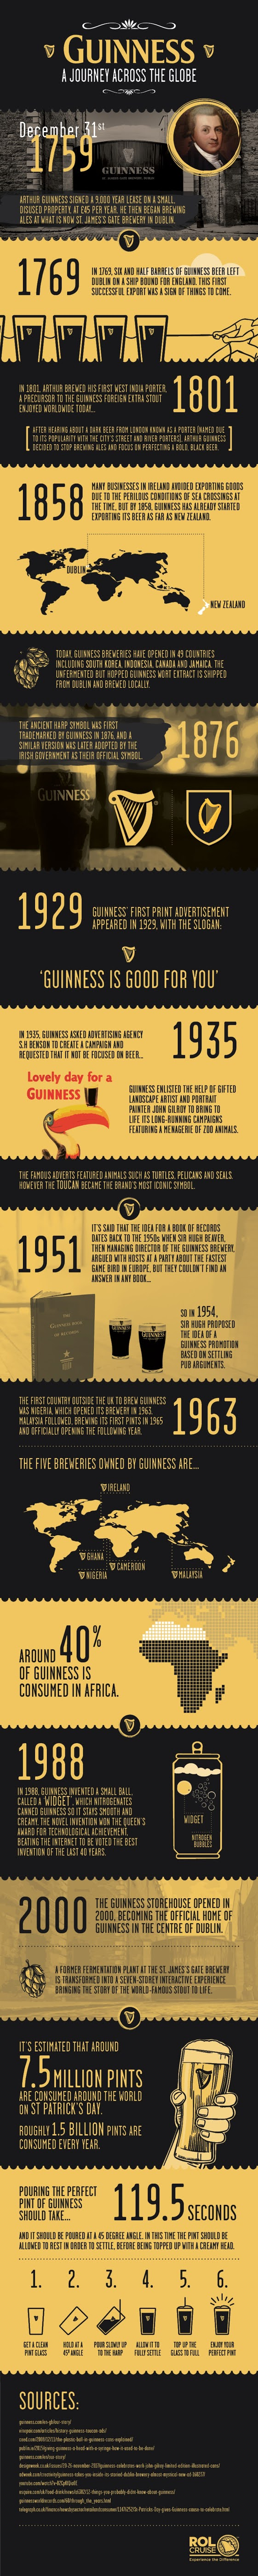 Guinness - A Journey Across The Globe #infographic